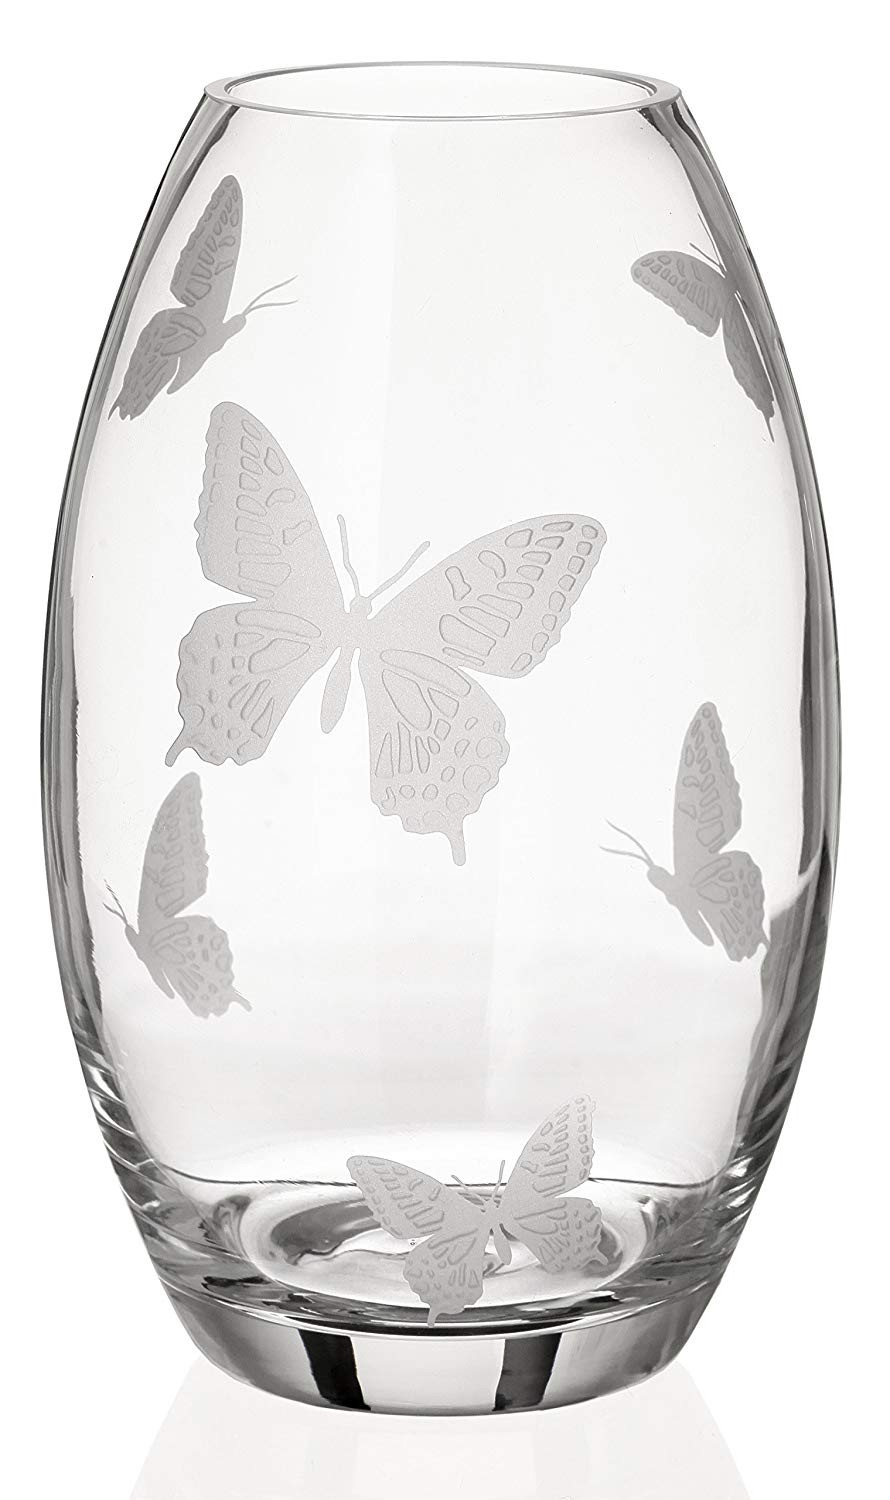 franz porcelain butterfly vase of amazon com annas exclusive decor butterfly vase luxury hand pertaining to amazon com annas exclusive decor butterfly vase luxury hand blown glass vase with sandblasted butterflies premium lead free glass clear